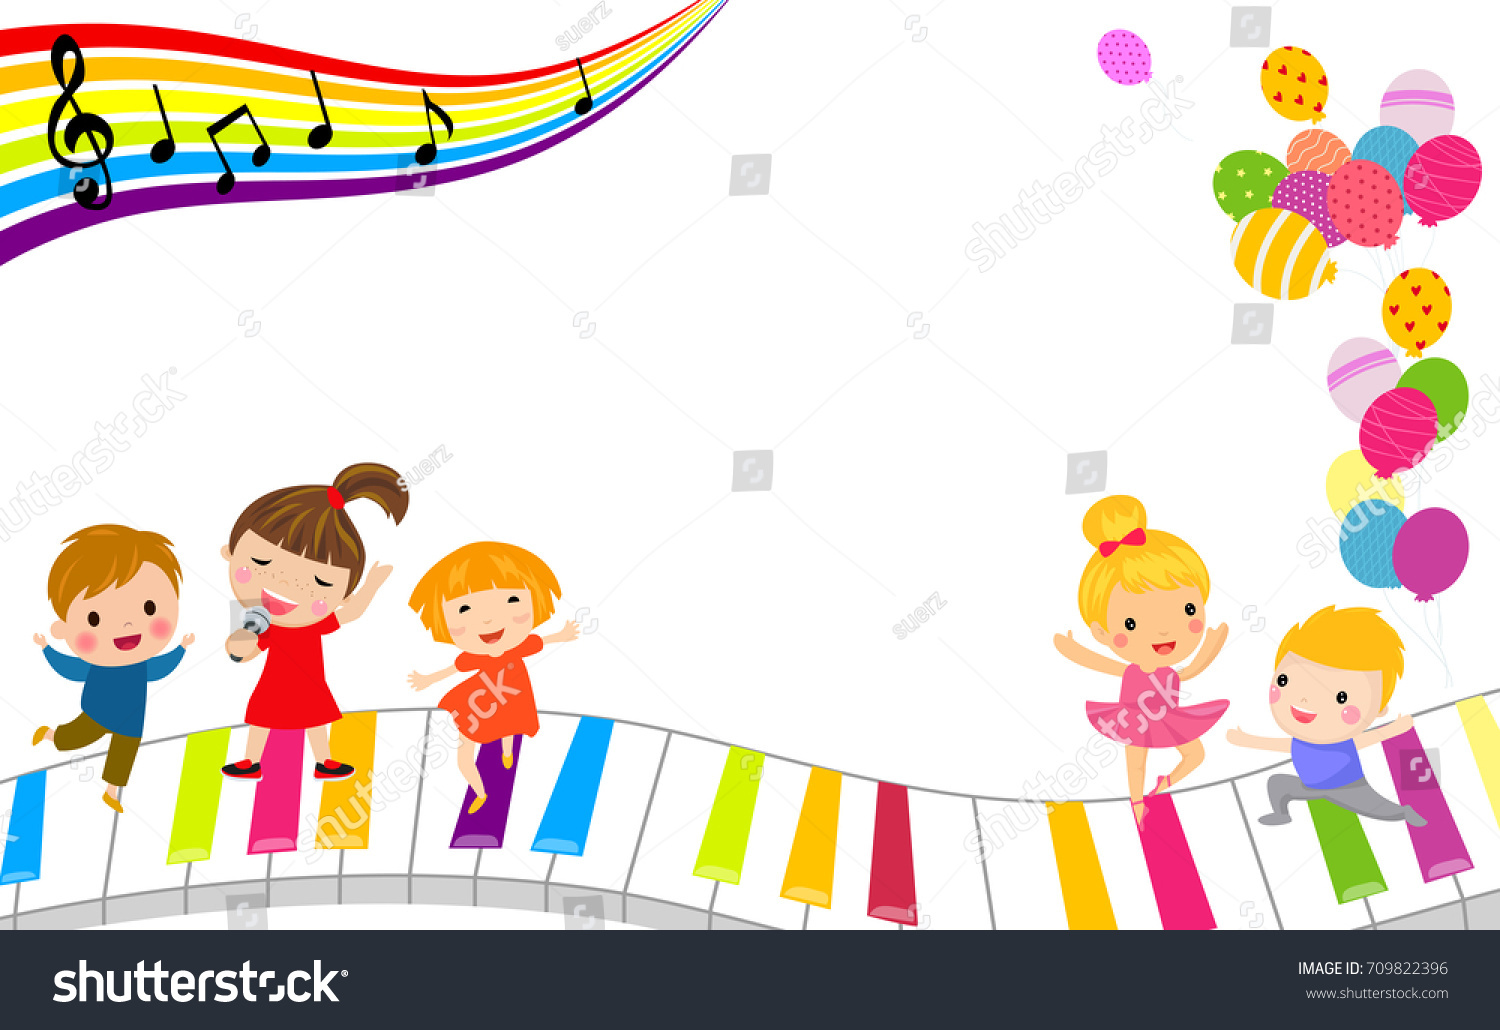 children and music frame - Music Picture Frame